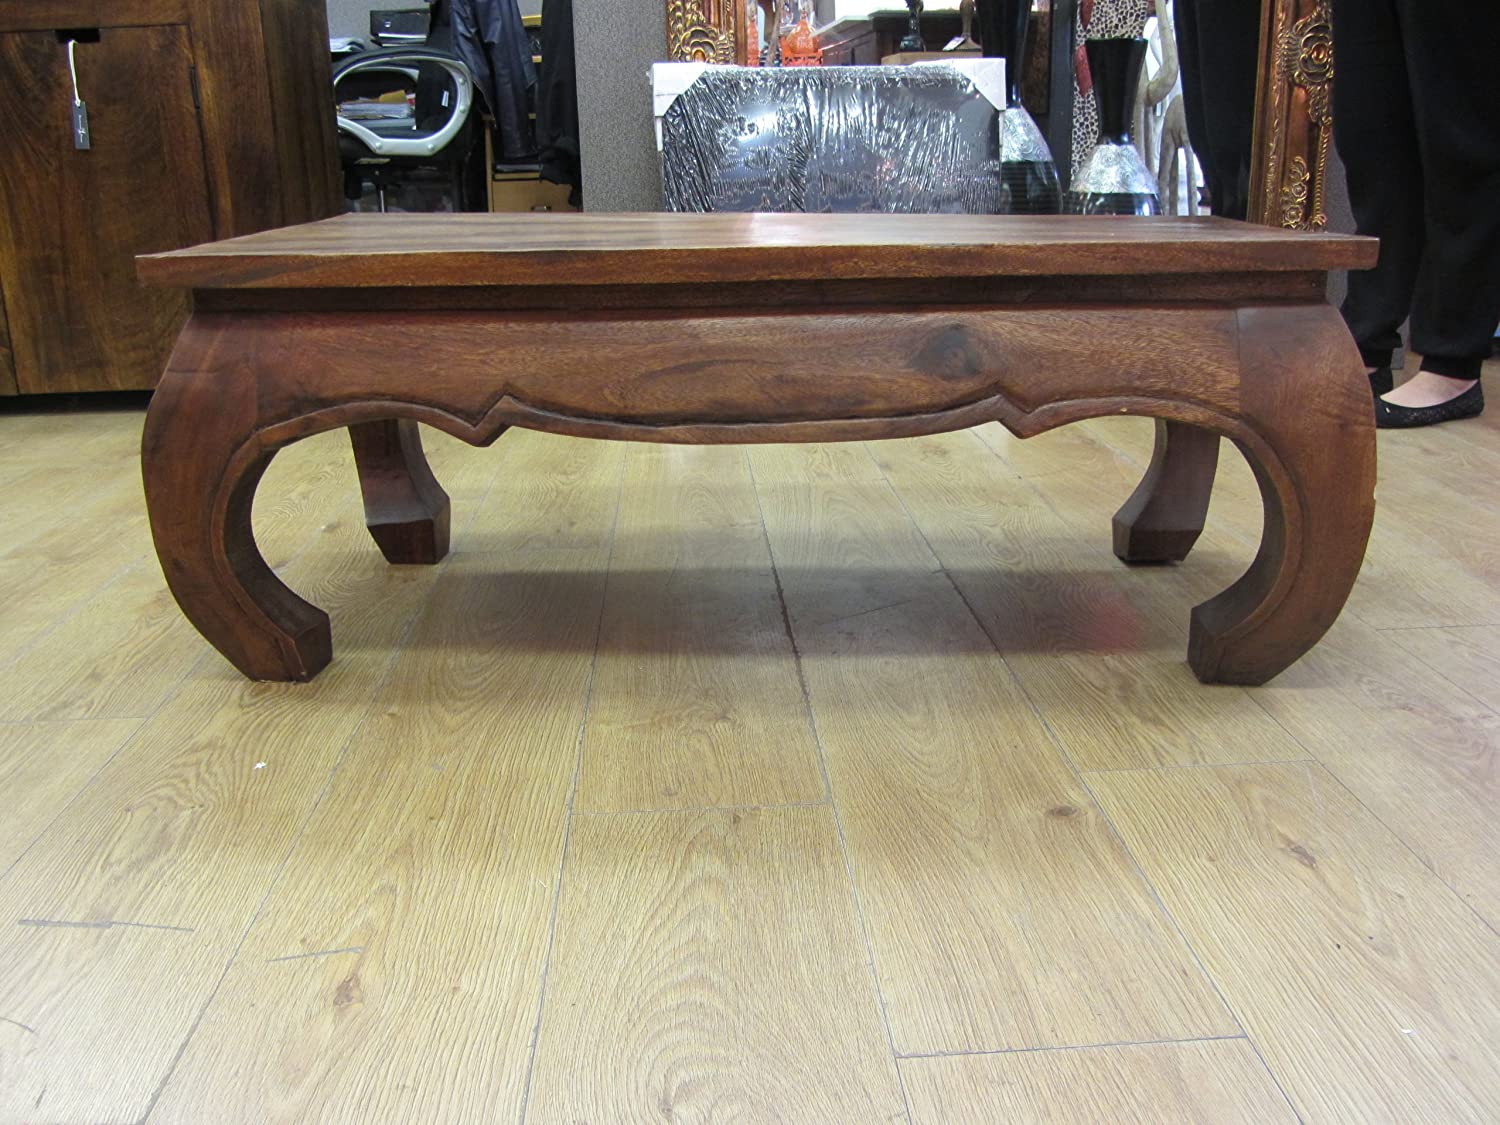 Thai Rosewood Opium Coffee Table   100 X 50 X 40cm: Amazon.co.uk: Kitchen U0026  Home